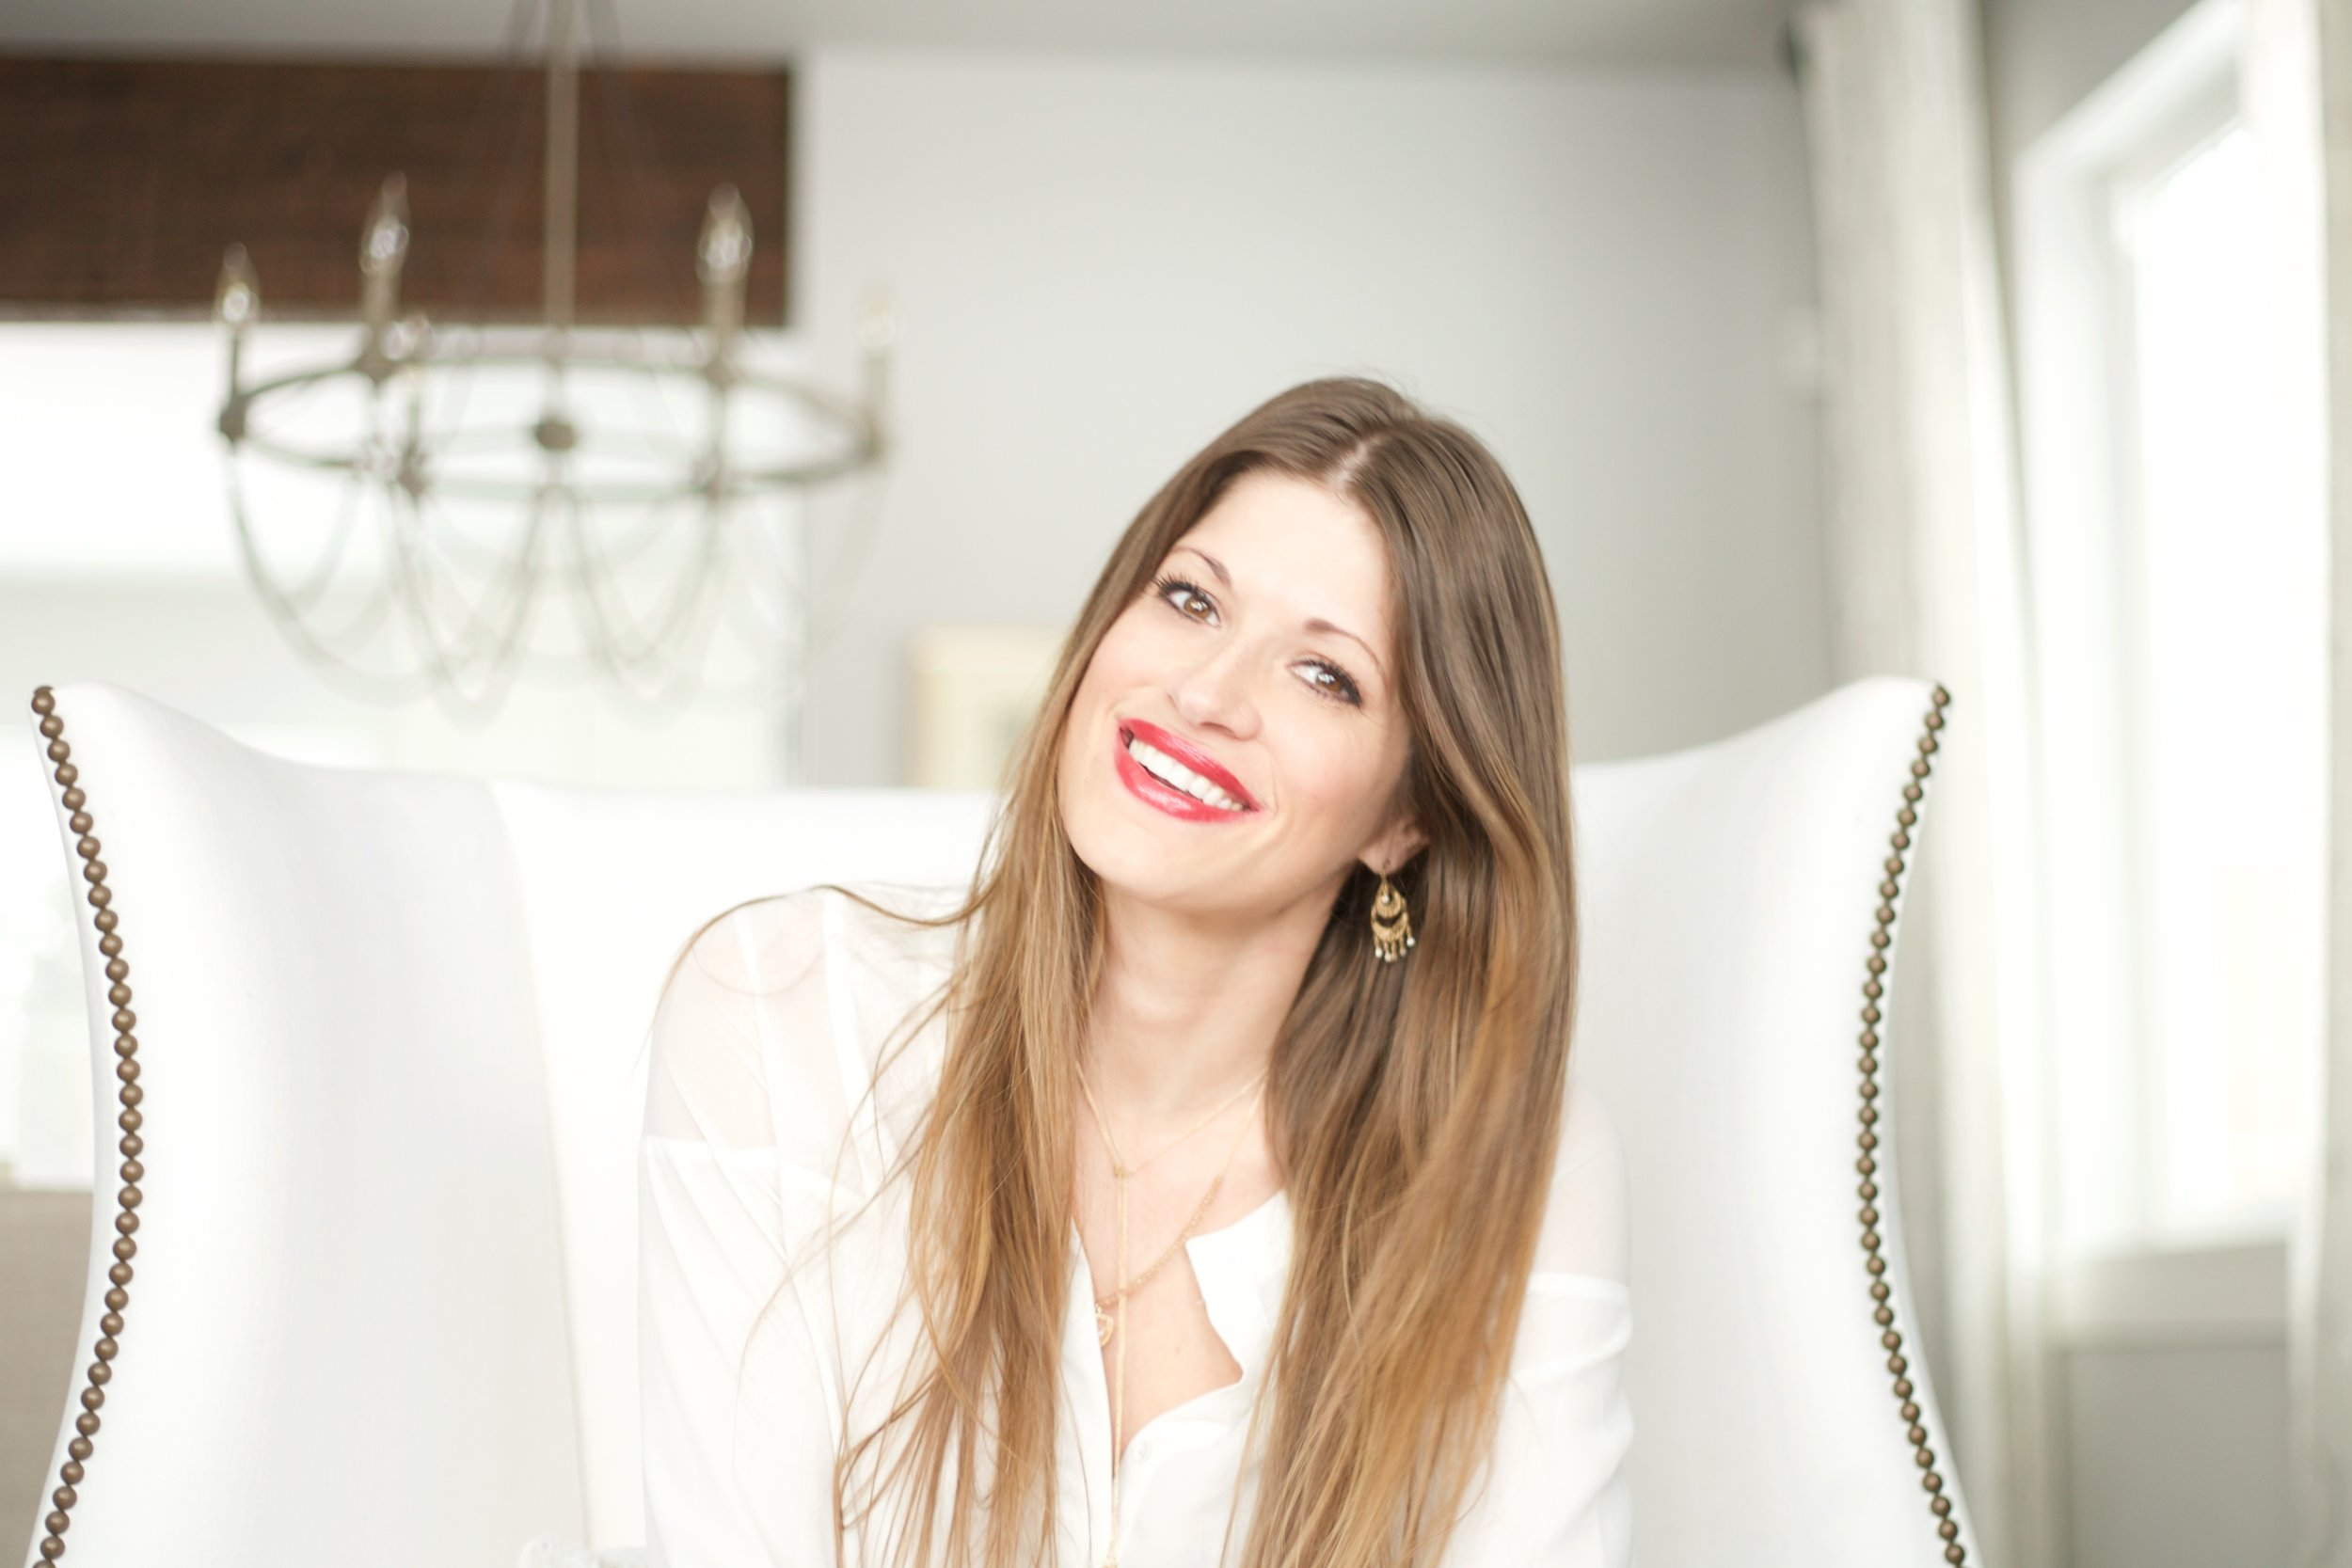 Hi, my name is Hollie - I am a photographer, beauty consultant & lover of interior design. I would love to hep make your world a little more beautiful!